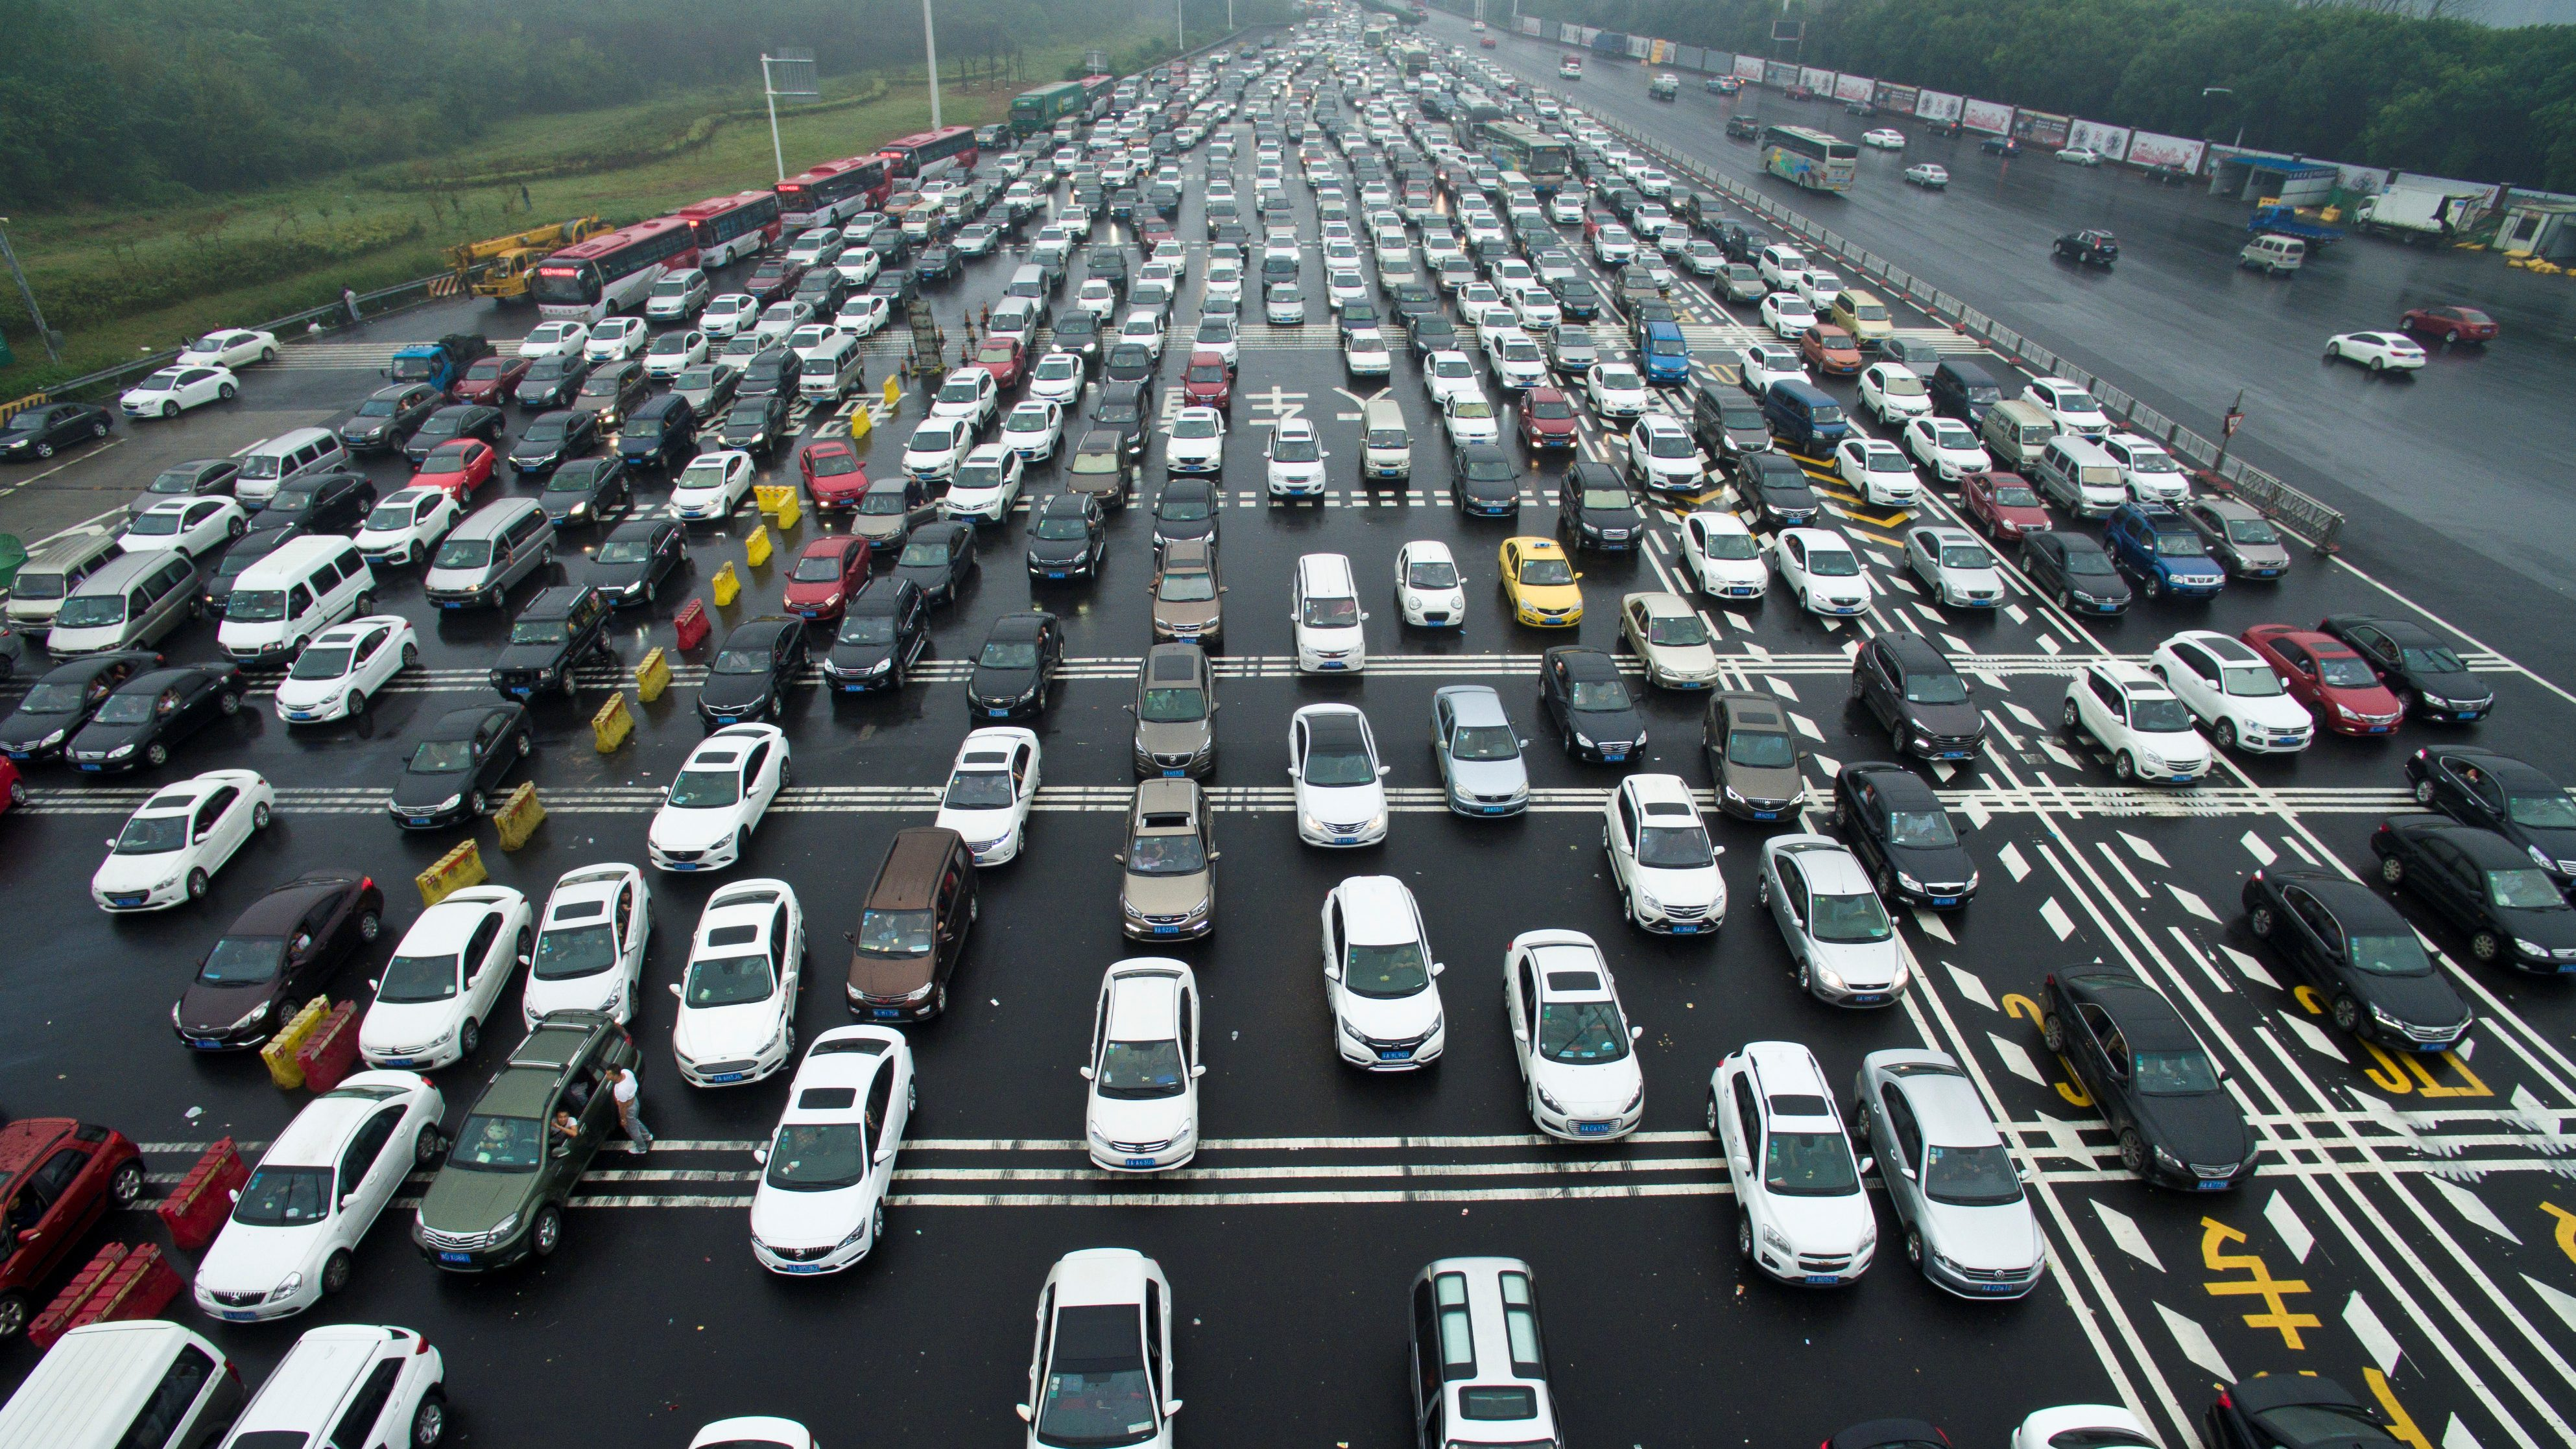 Cars line up near a toll station on the first day of China's National Day holiday, in Nanjing, Jiangsu province, China on Oct.1, 2016.